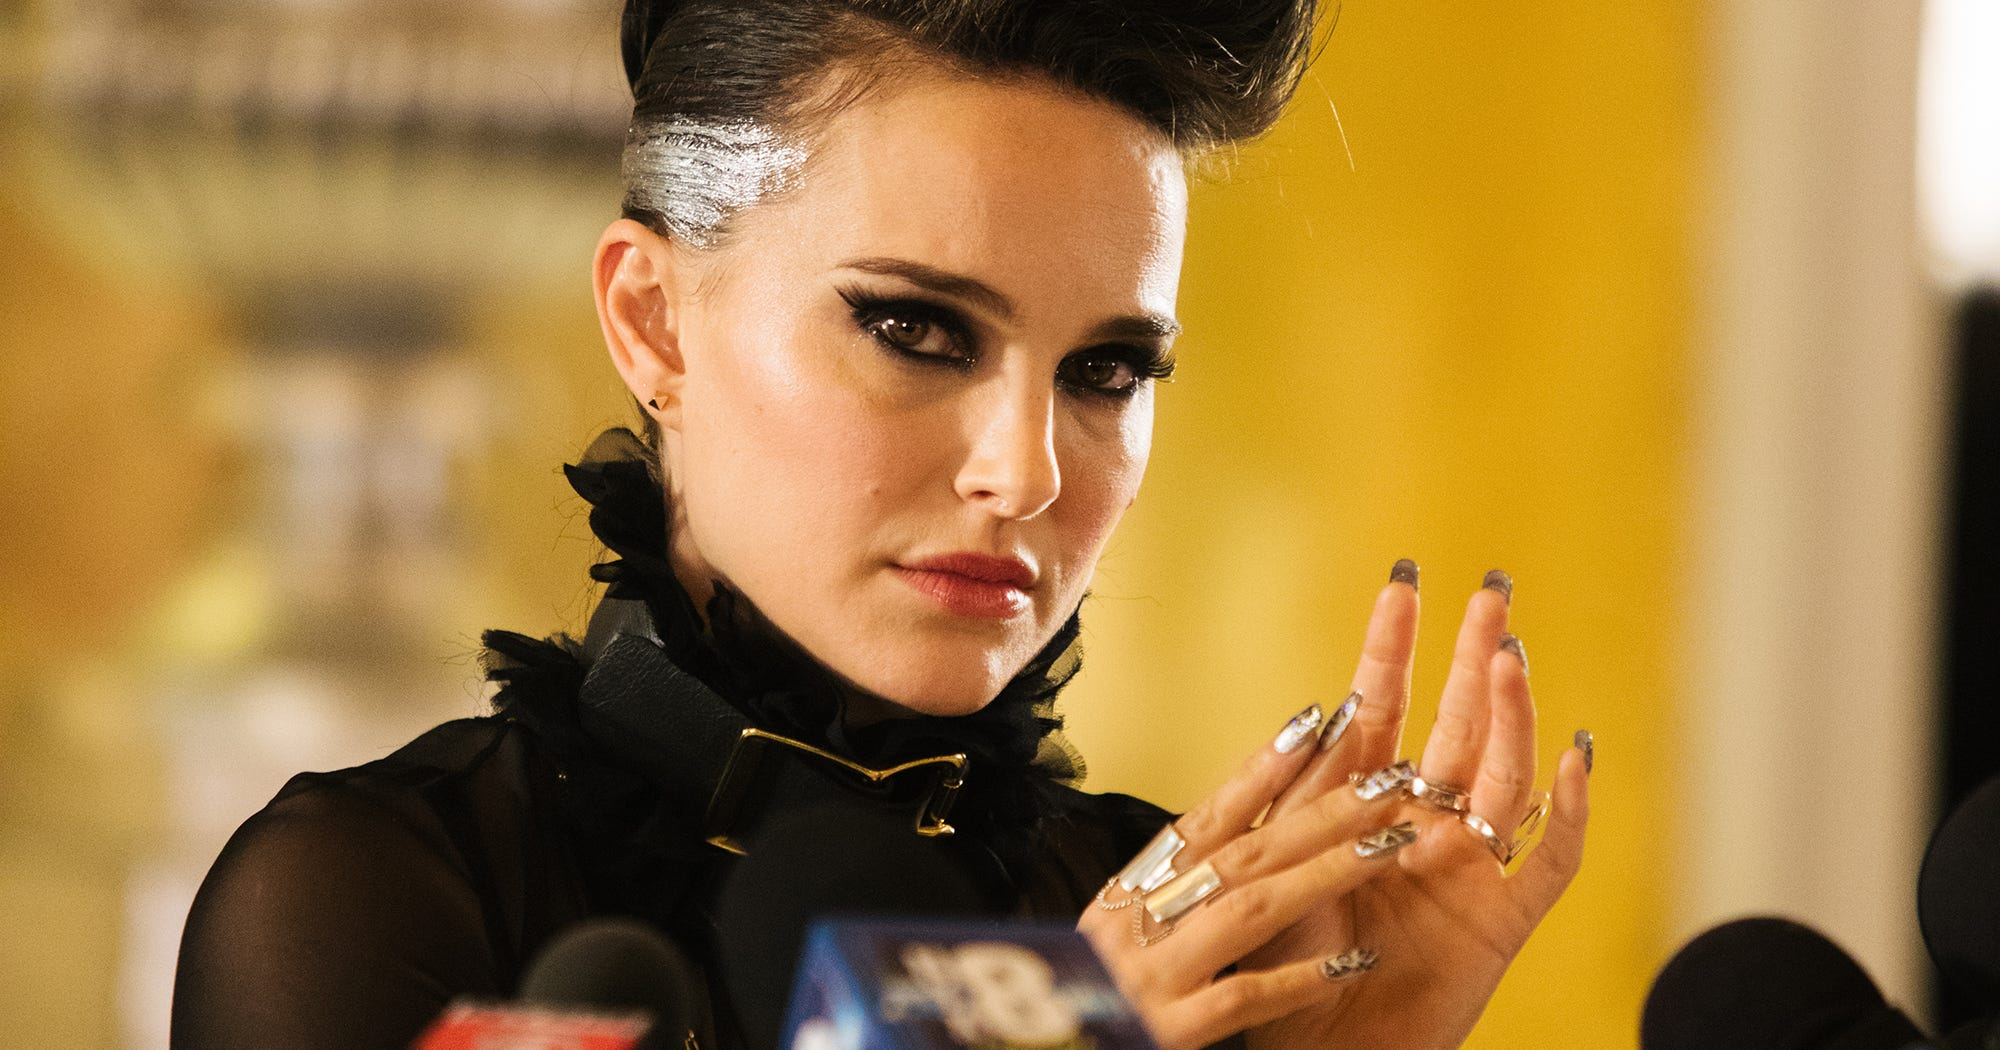 Vox Lux Review Why Natalie Portman Movie Disappoints